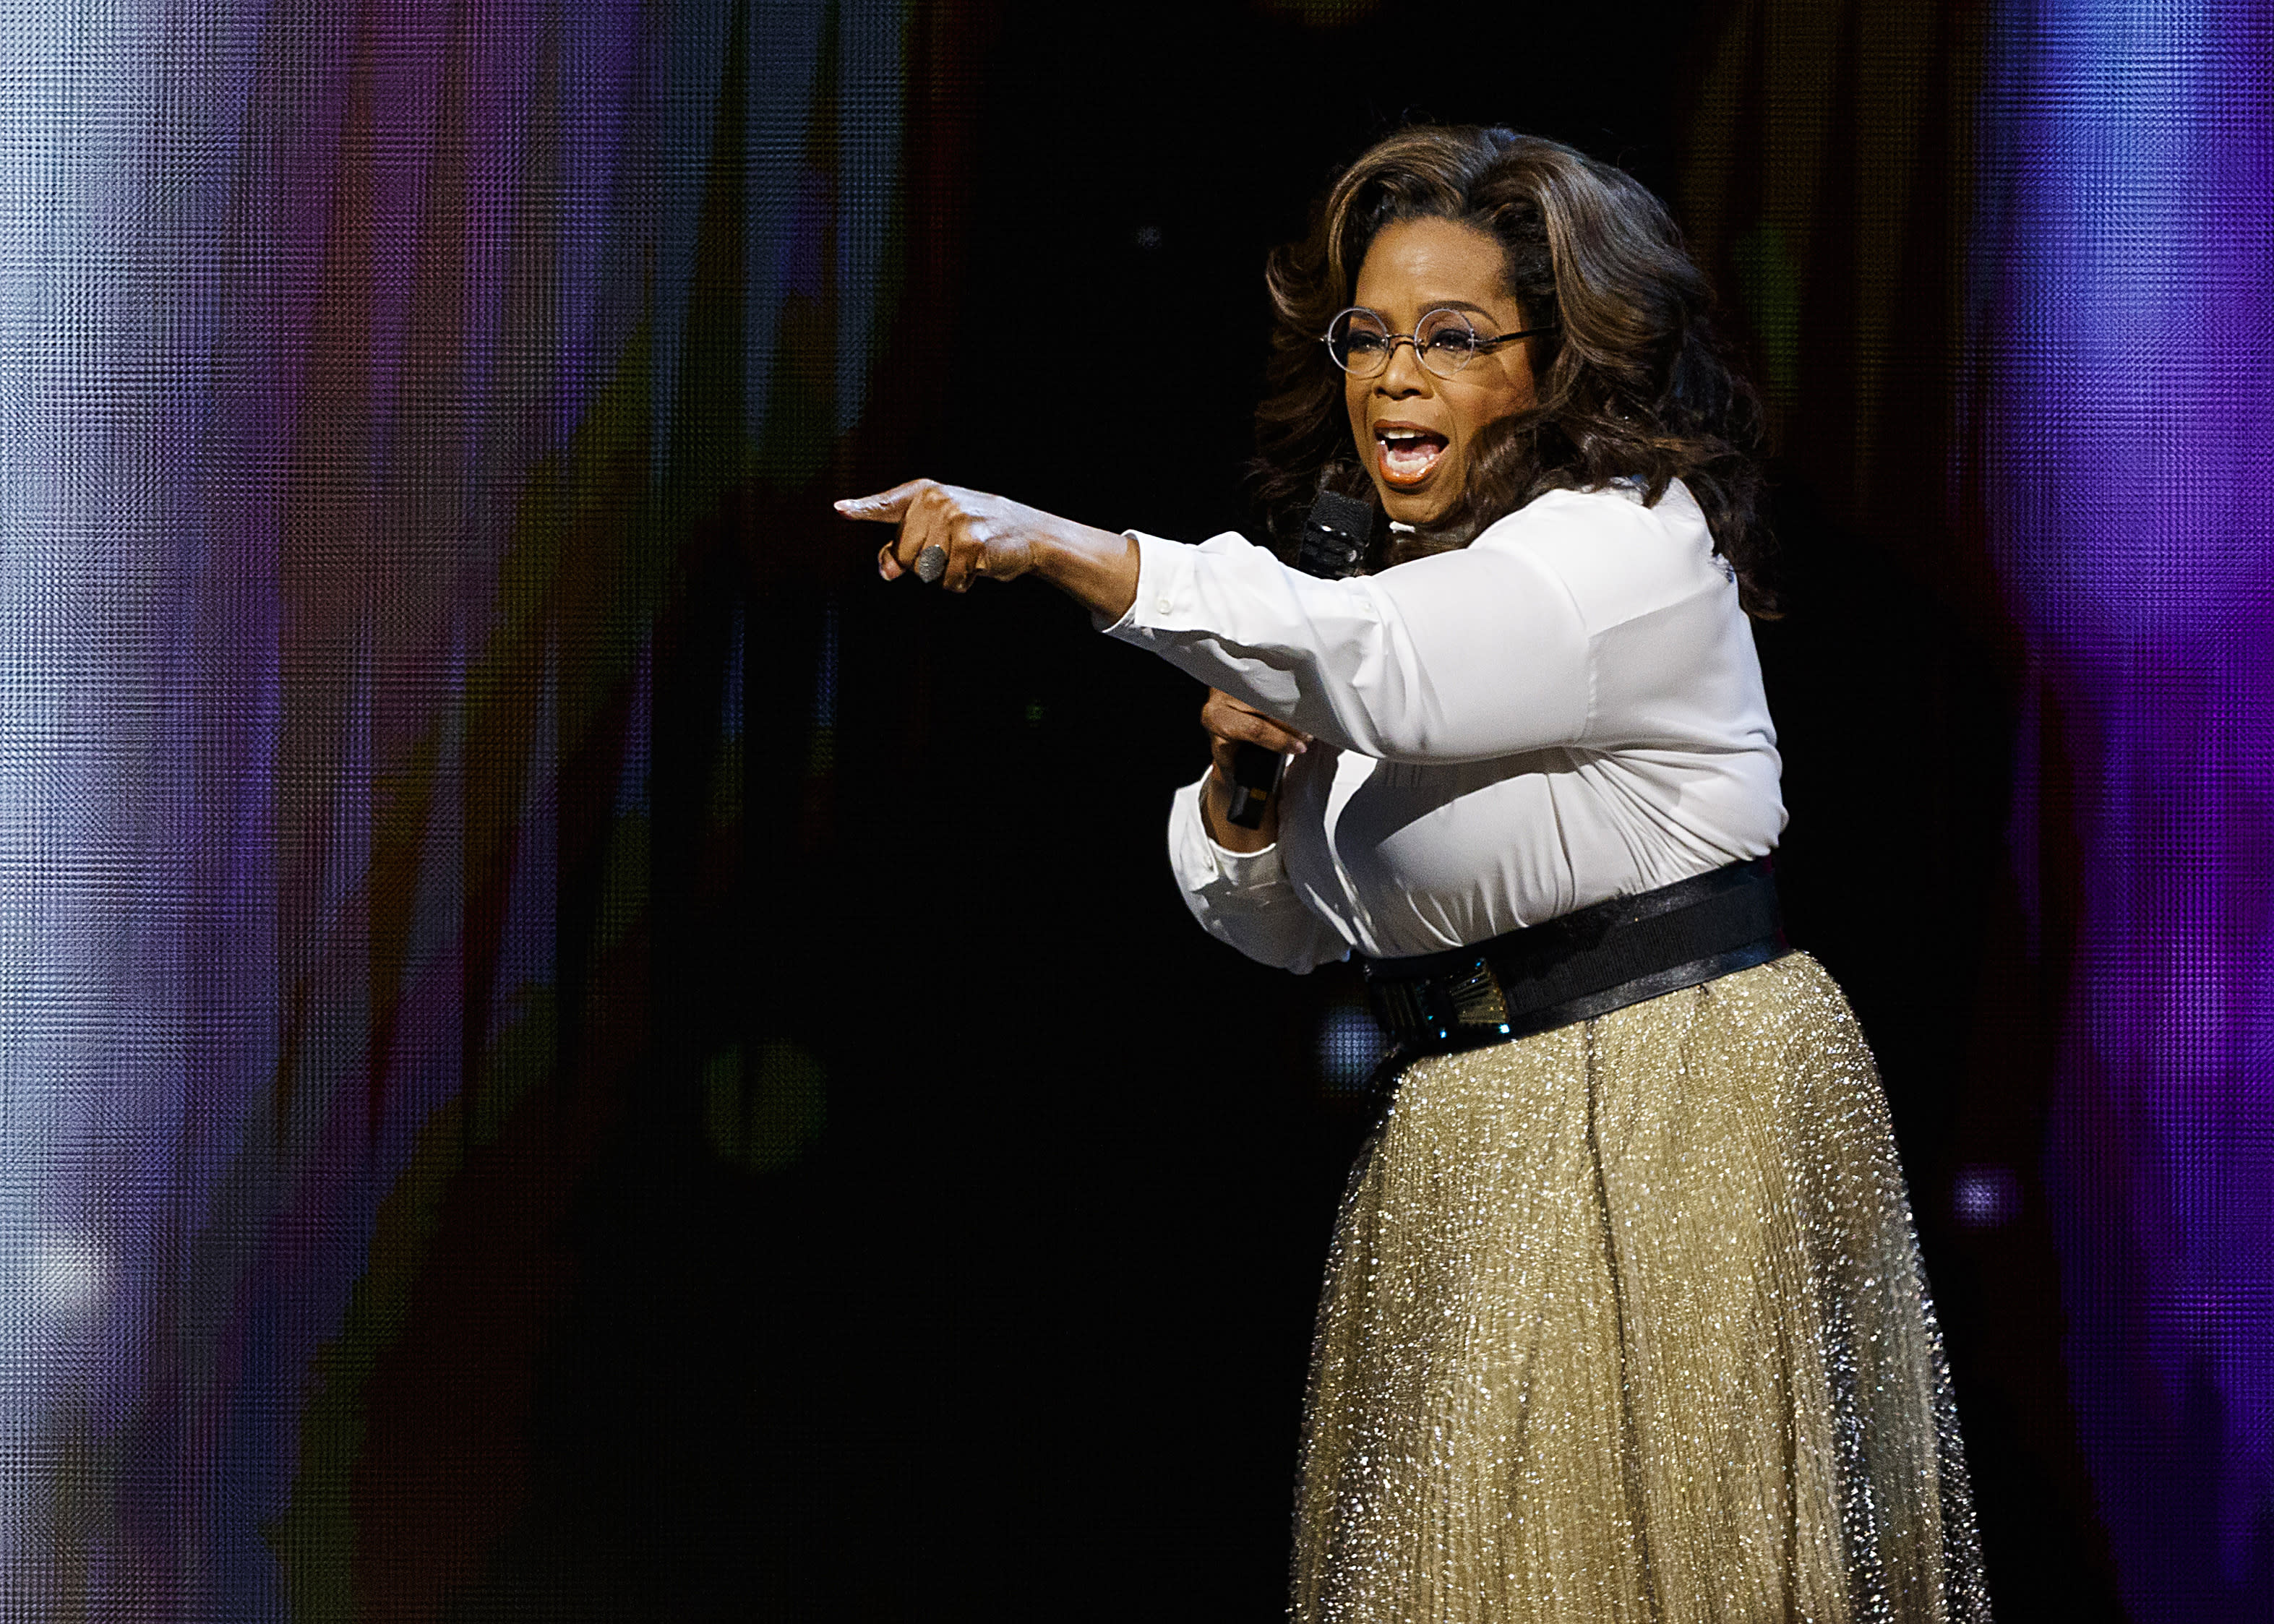 'Like winning a Grammy': What it's like to make Oprah's list of favorite things